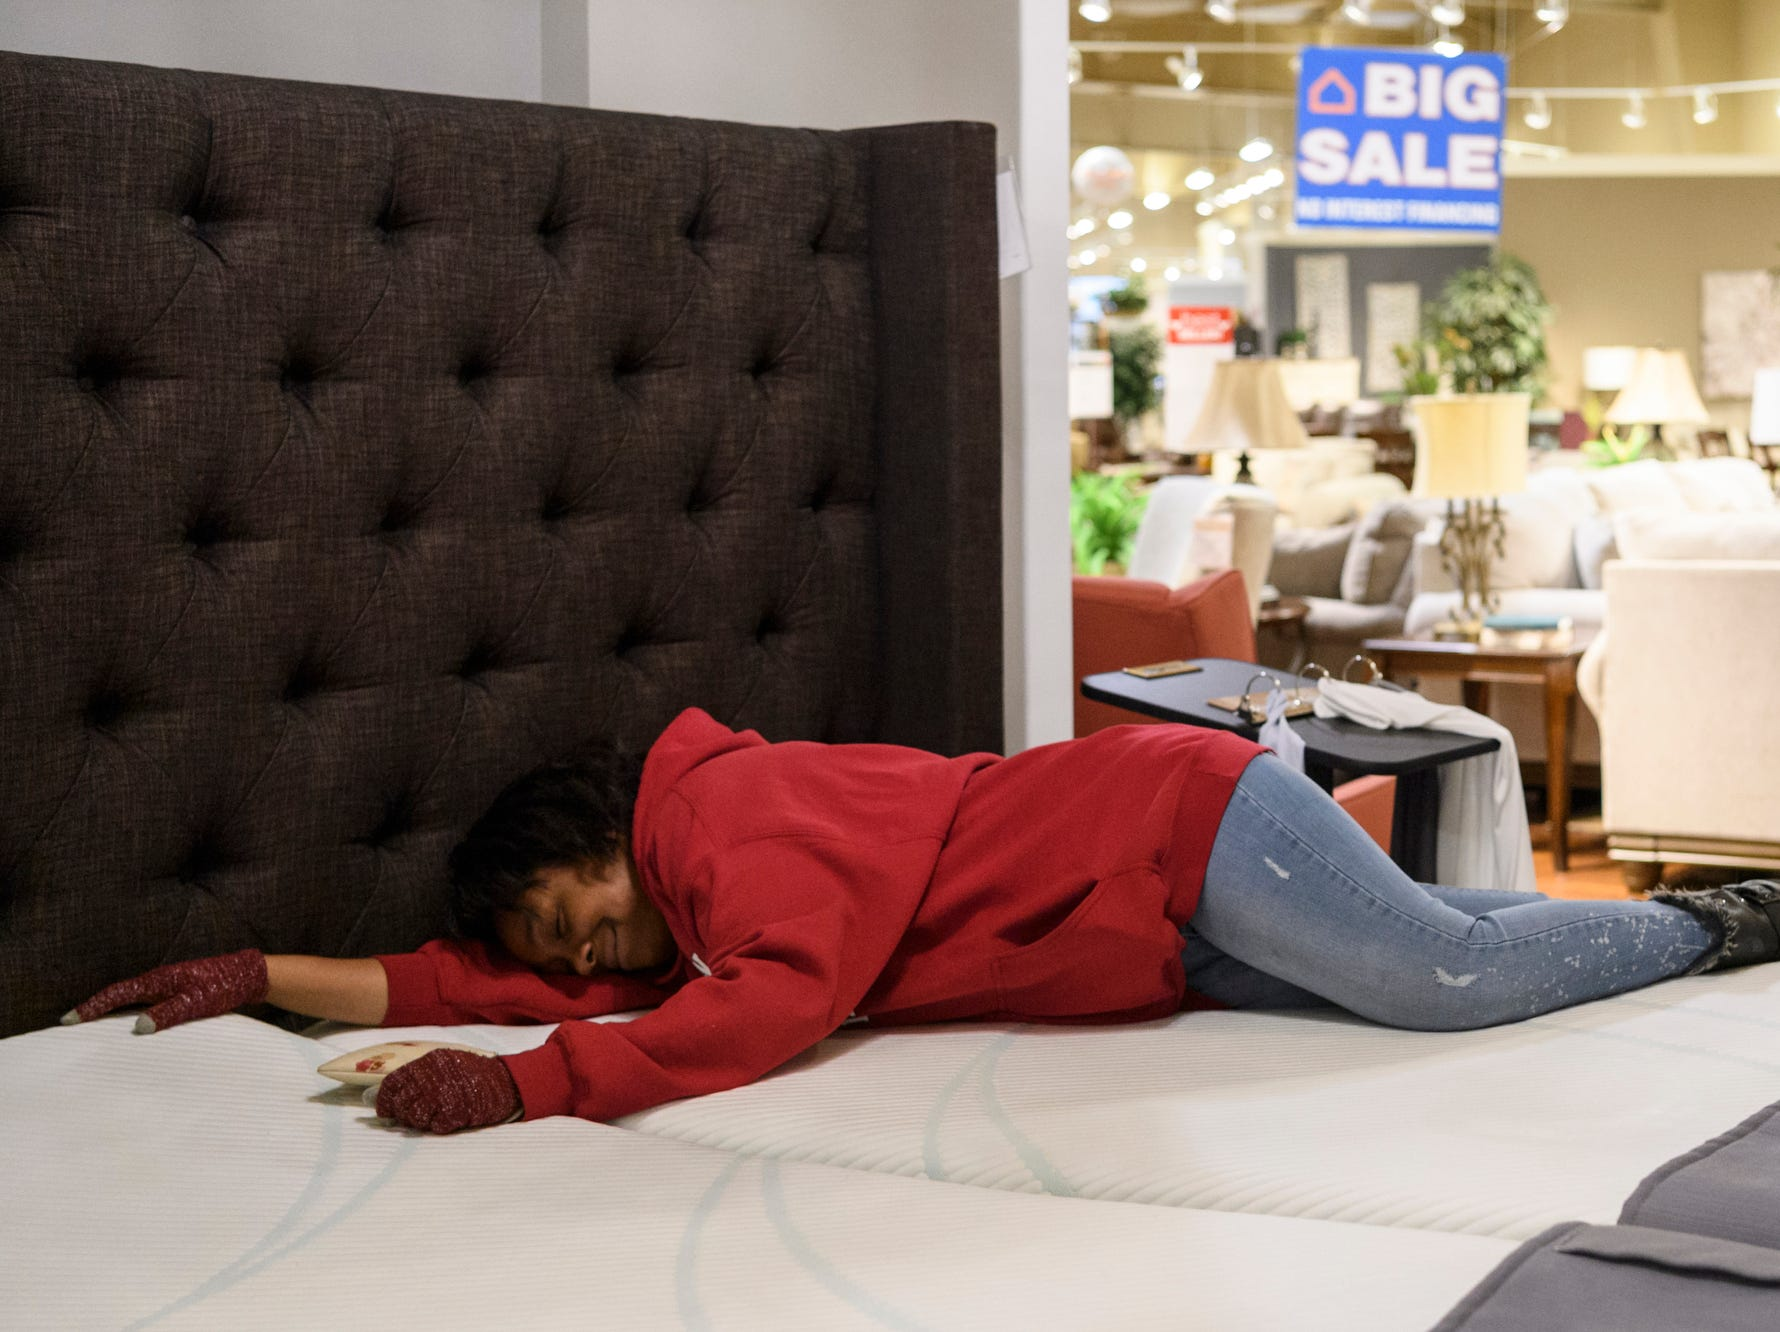 Photo taken for the 500th Habitat homeowner story that ran on April 21: Tamisha Dilworth tests out the comfort of a mattress as she shops for furniture at Ashley HomeStore in Evansville, Friday afternoon, March 1, 2019. While working for her Habitat house and sleeping on the couch or the floor at her father's house, she frequently dreamt about how good it would feel to have her own bed again.